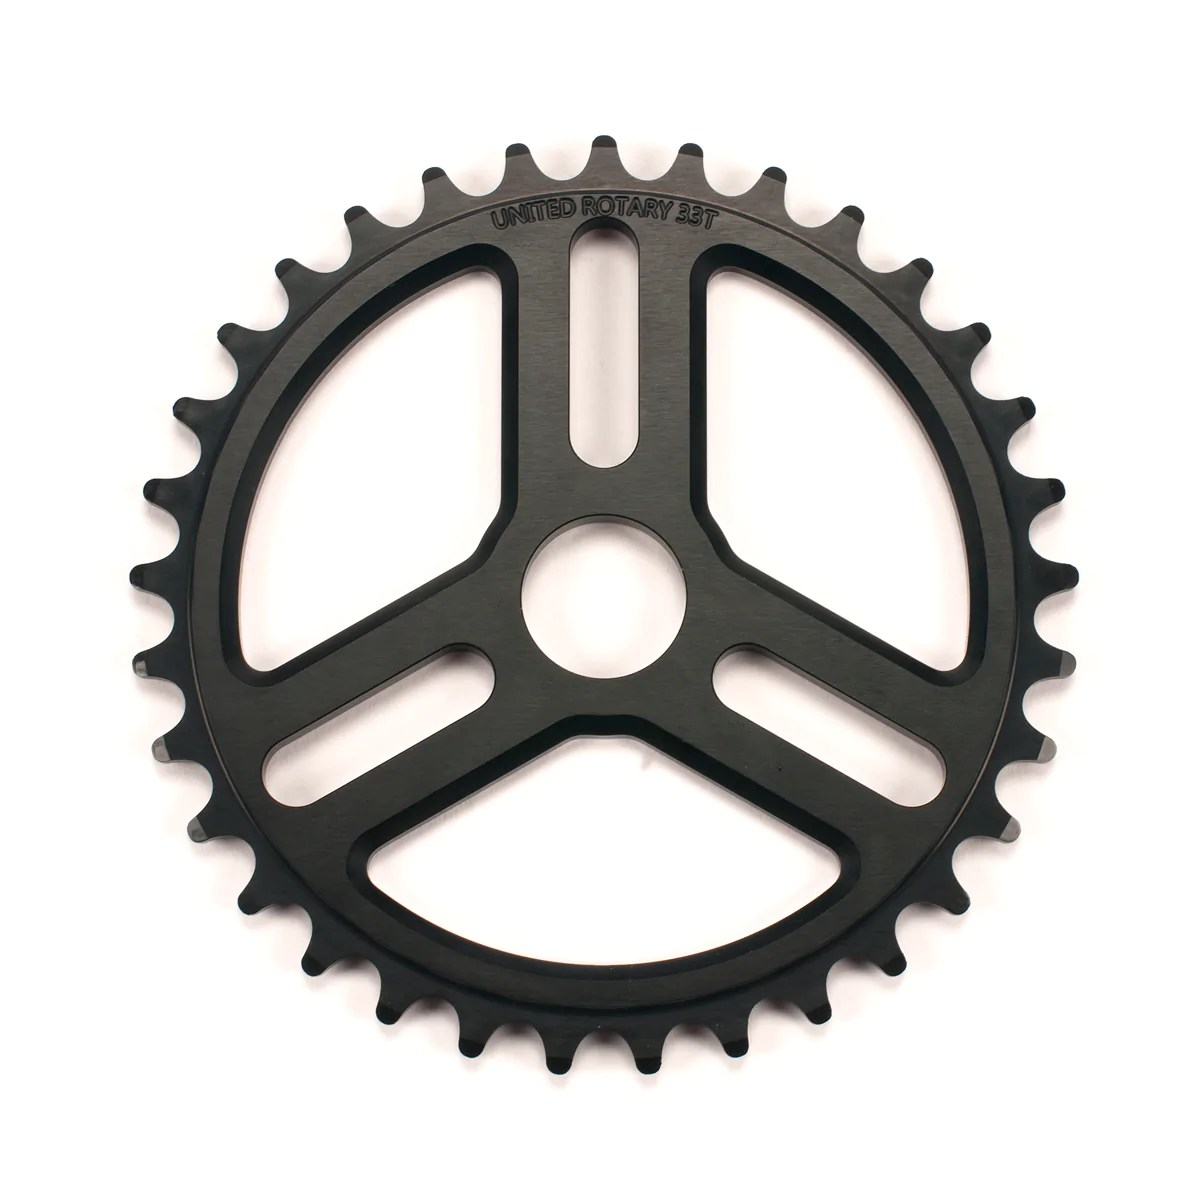 Bmx Parts Rotary Sprocket Black Bmx Parts United Bmx United Bike Co